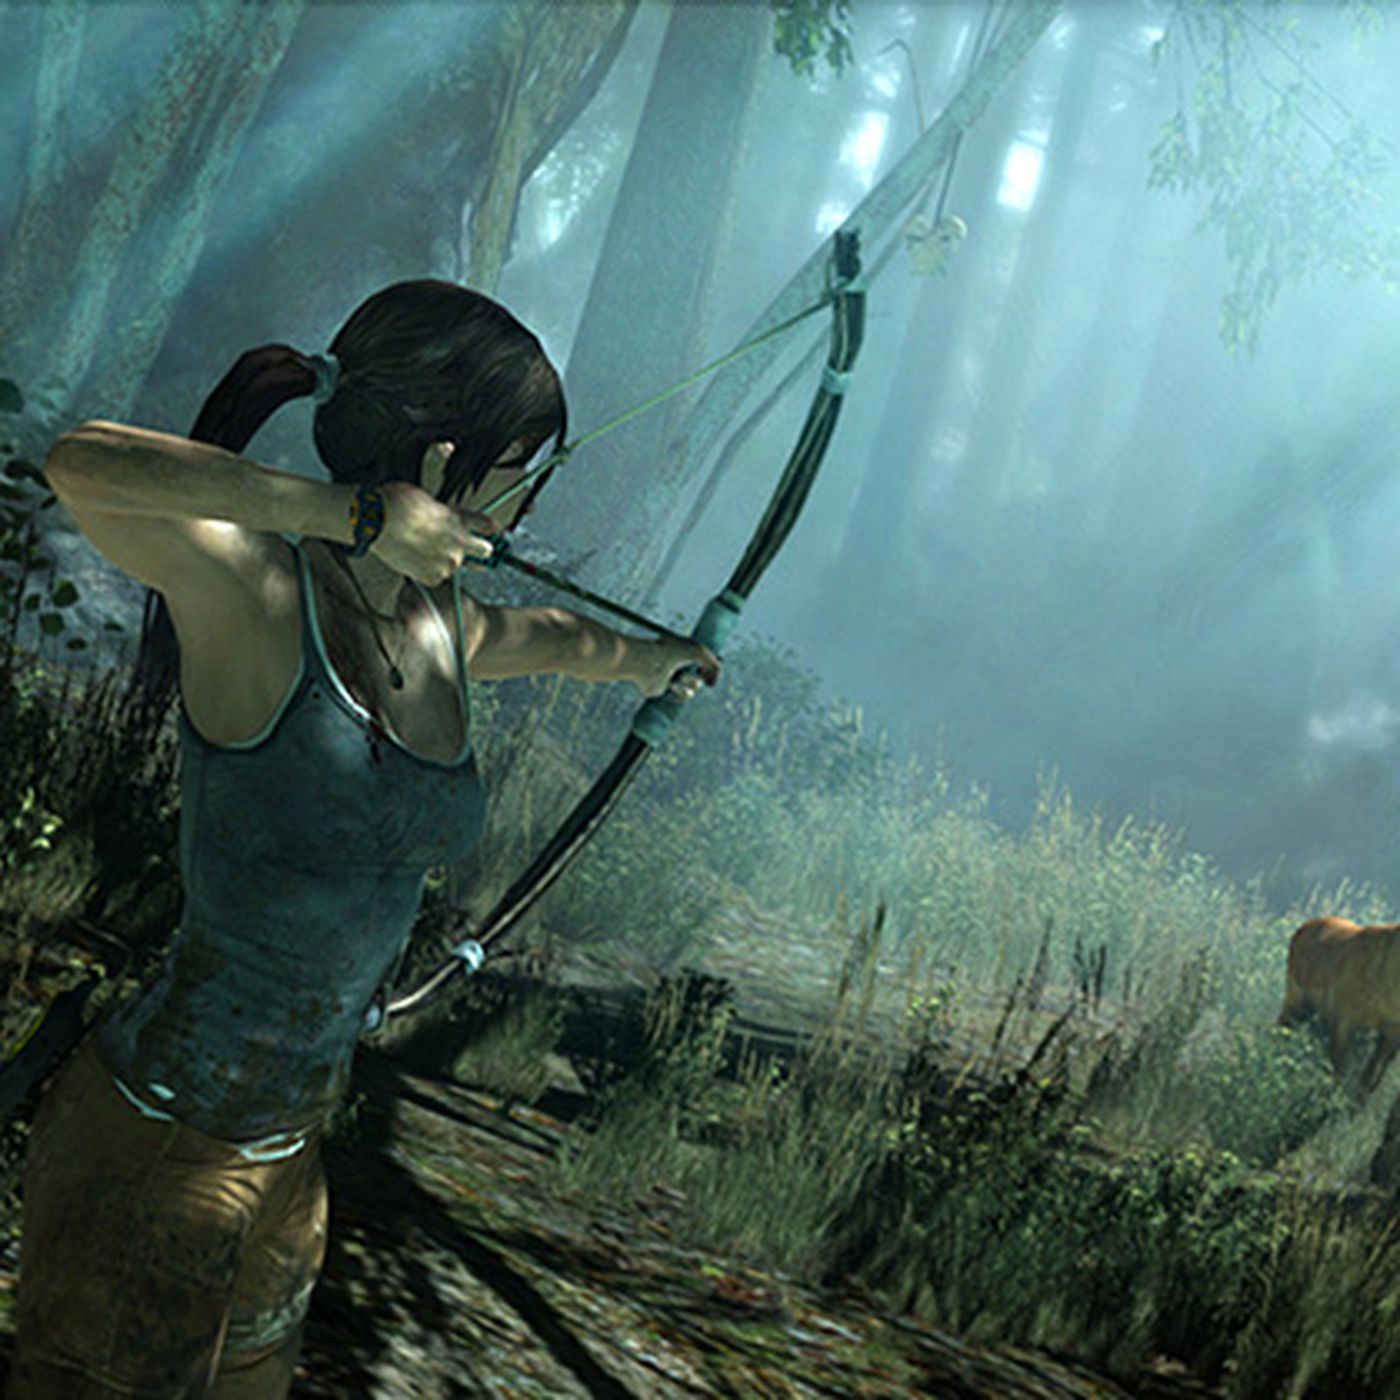 Tomb Raider Pax Demo Shows Lara Croft Platforming And Hunting